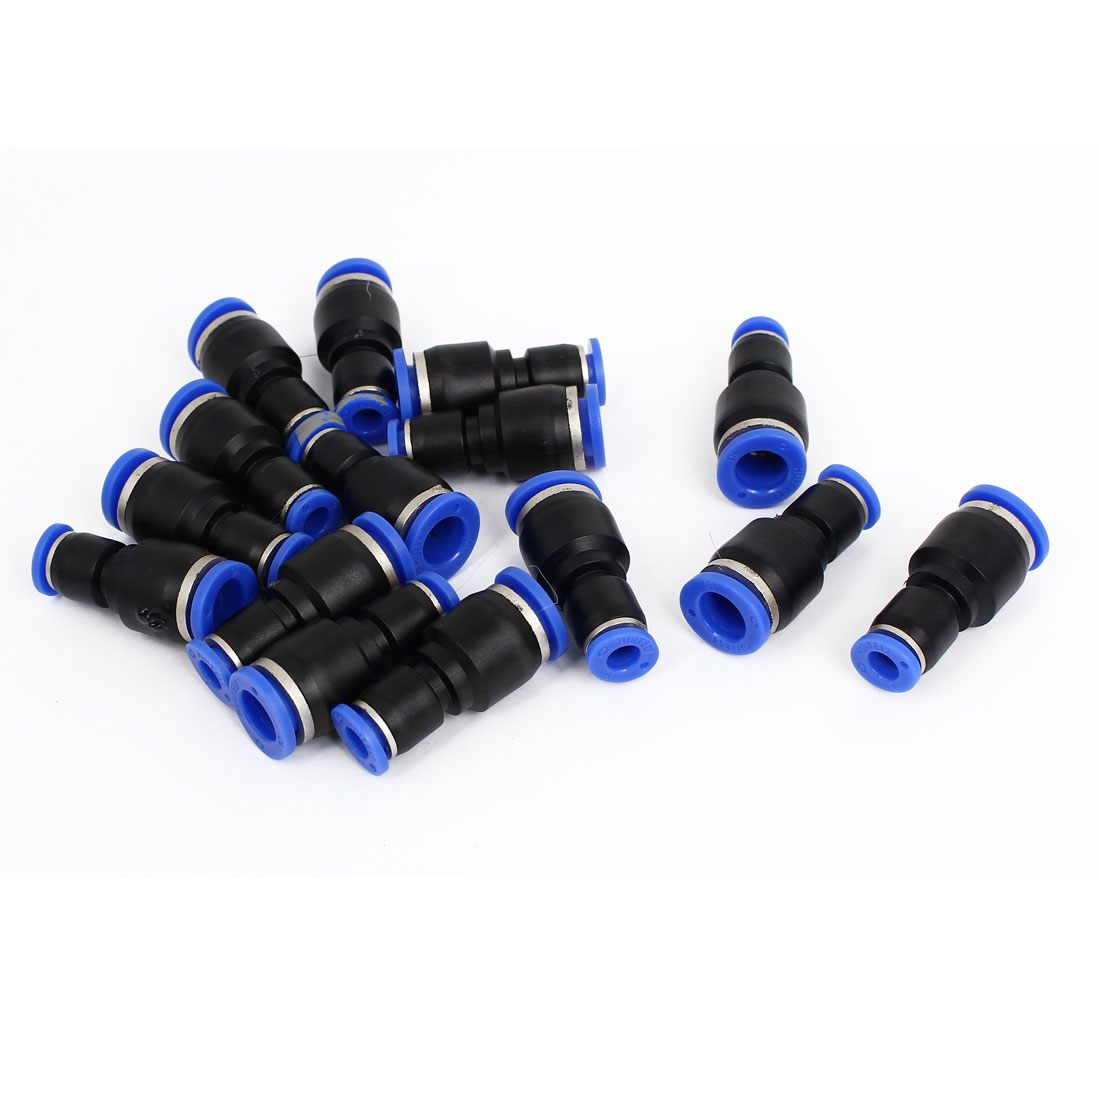 6mm to 10mm Tube Dia 2 Ways Air Pneumatic Quick Joint Fittings 15pcs